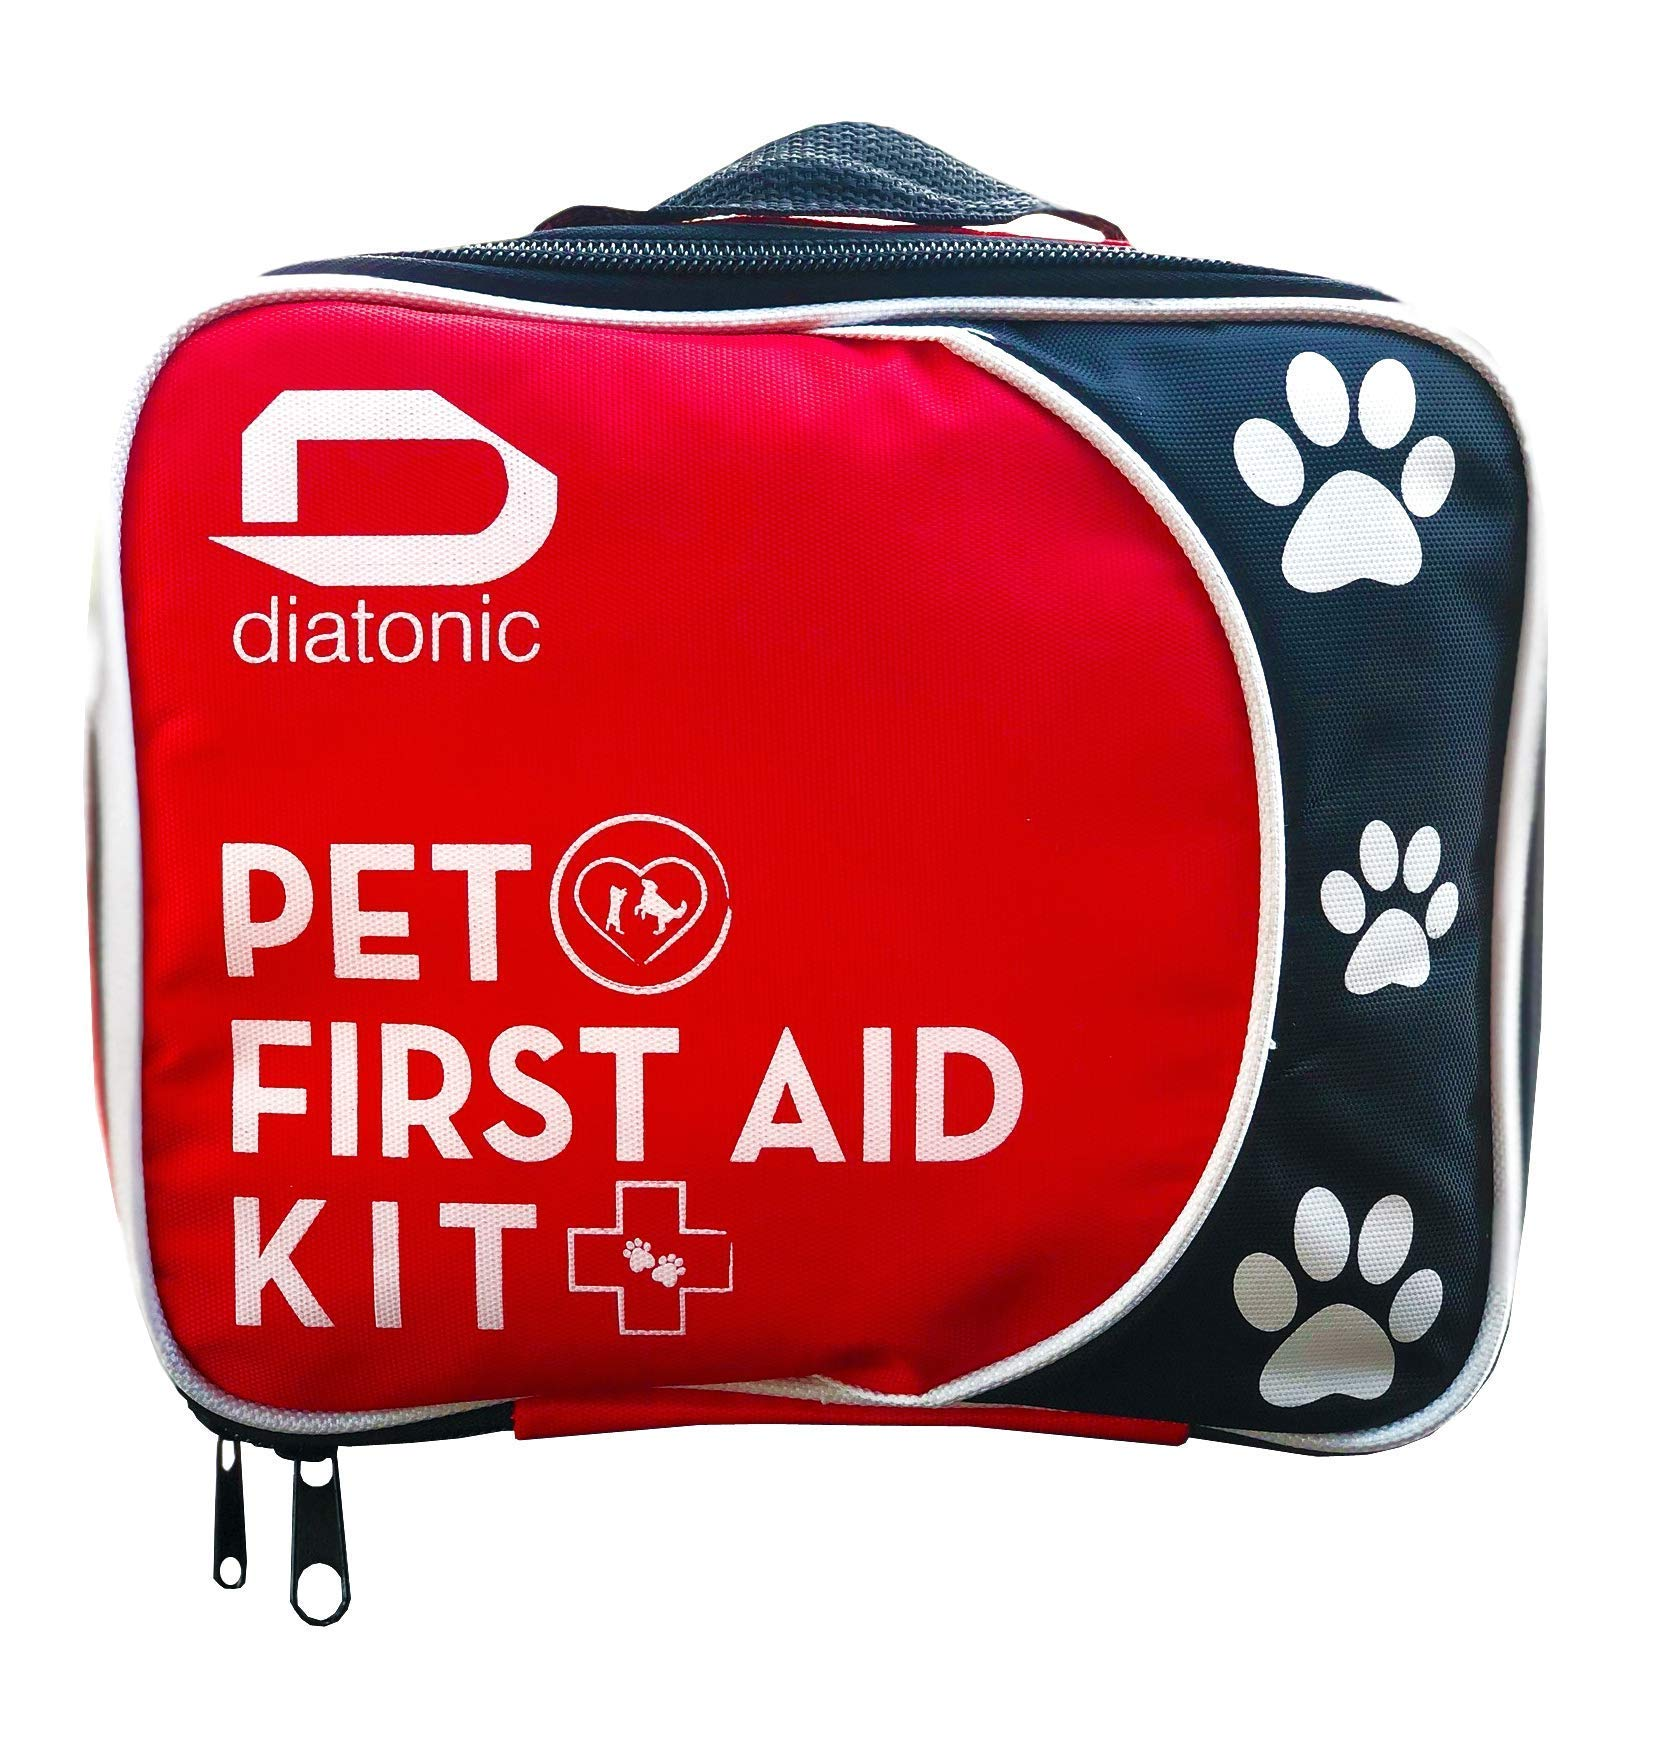 Pet First Aid Kit with Free Emergency Foldable Bowl - Travel and Camp for Pets and People, Universal First Aid - By Diatonic Designs by Diatonic Designs, LLC